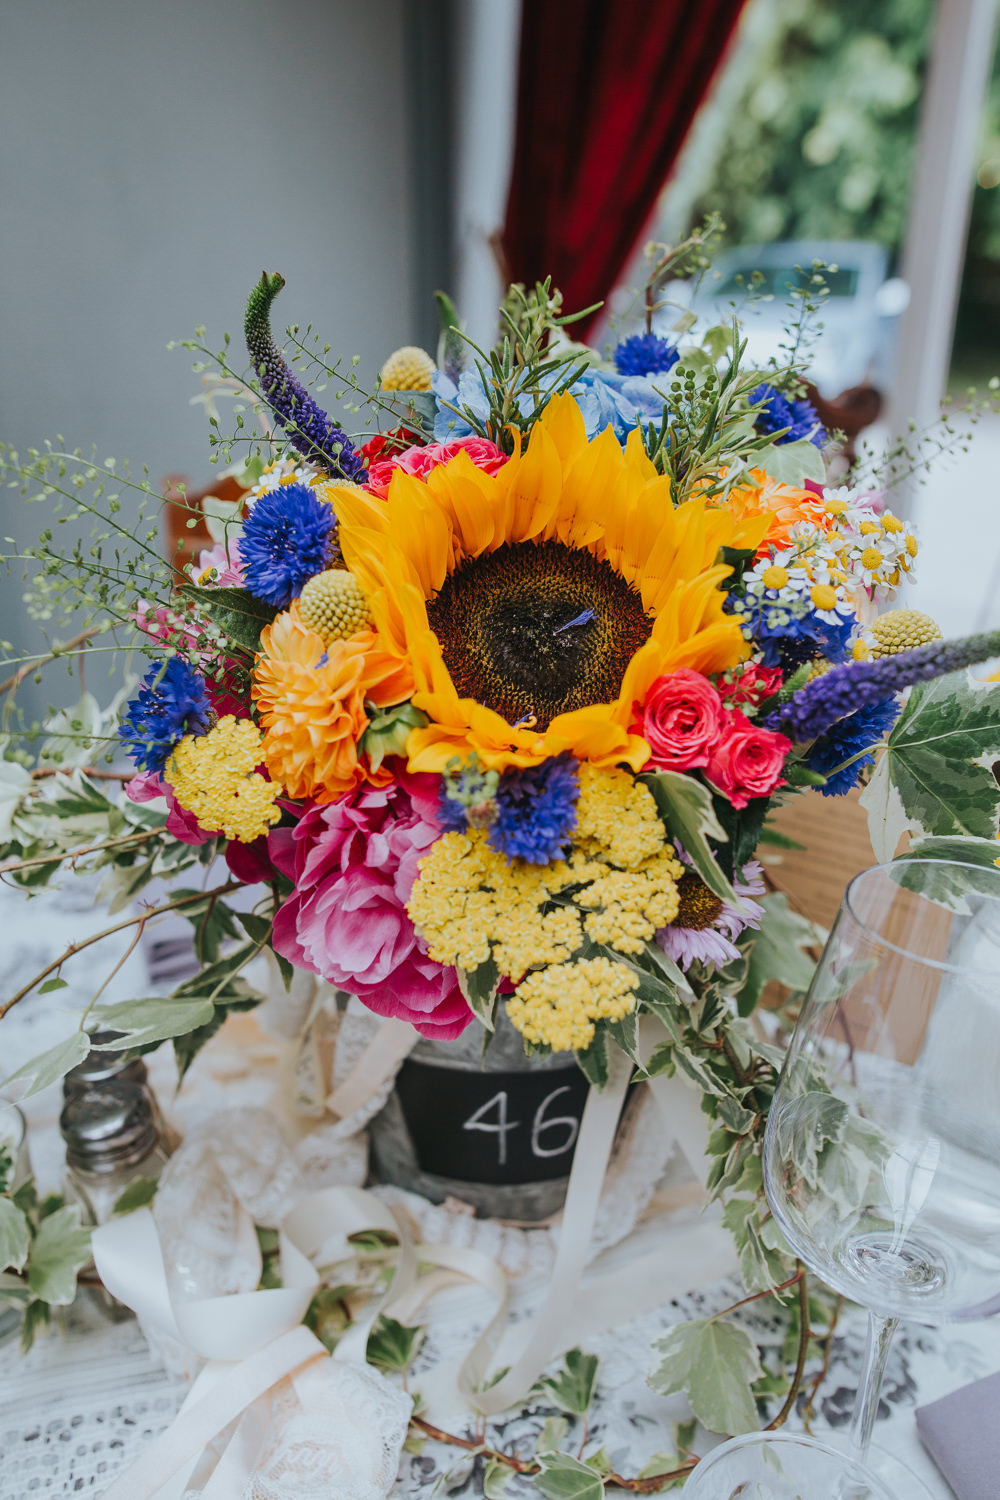 Flowers Peony Hydrangea Sunflower Daisy Cornflowers Craspedia Bucket Table Colourful Bright Summer Pub Wedding Charlotte Razzell Photography